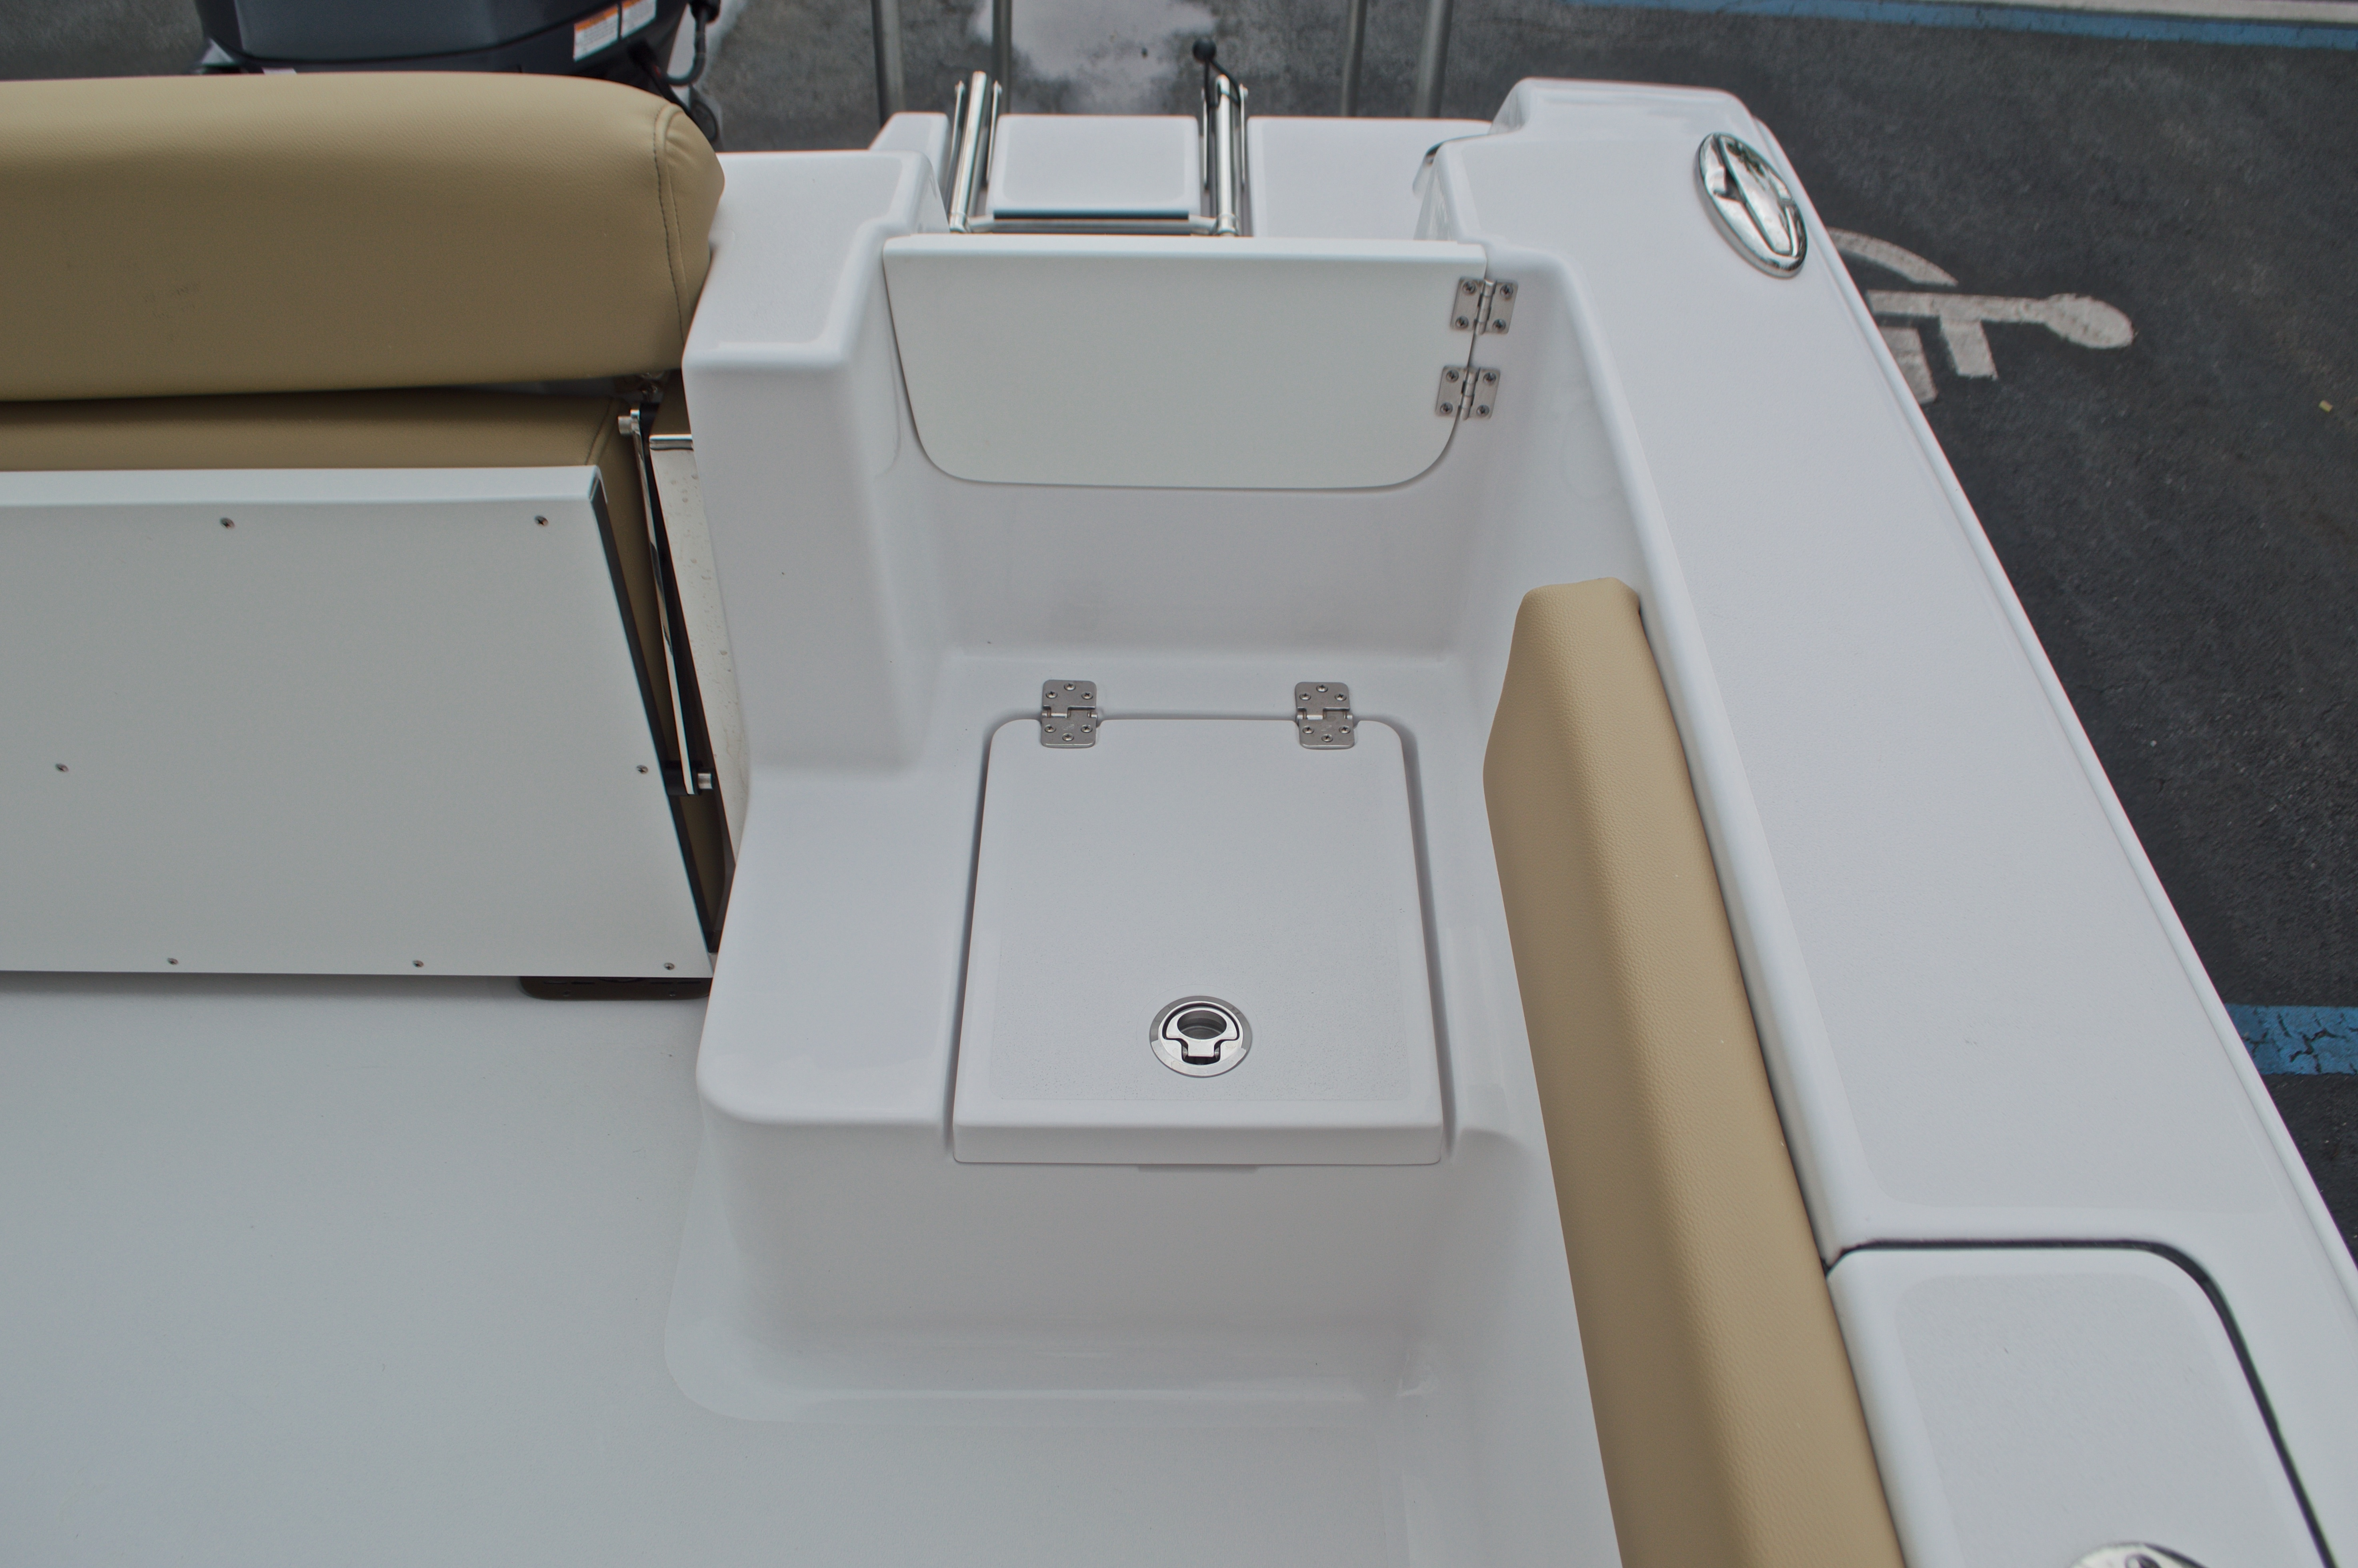 Thumbnail 19 for New 2017 Sportsman Open 212 Center Console boat for sale in Miami, FL